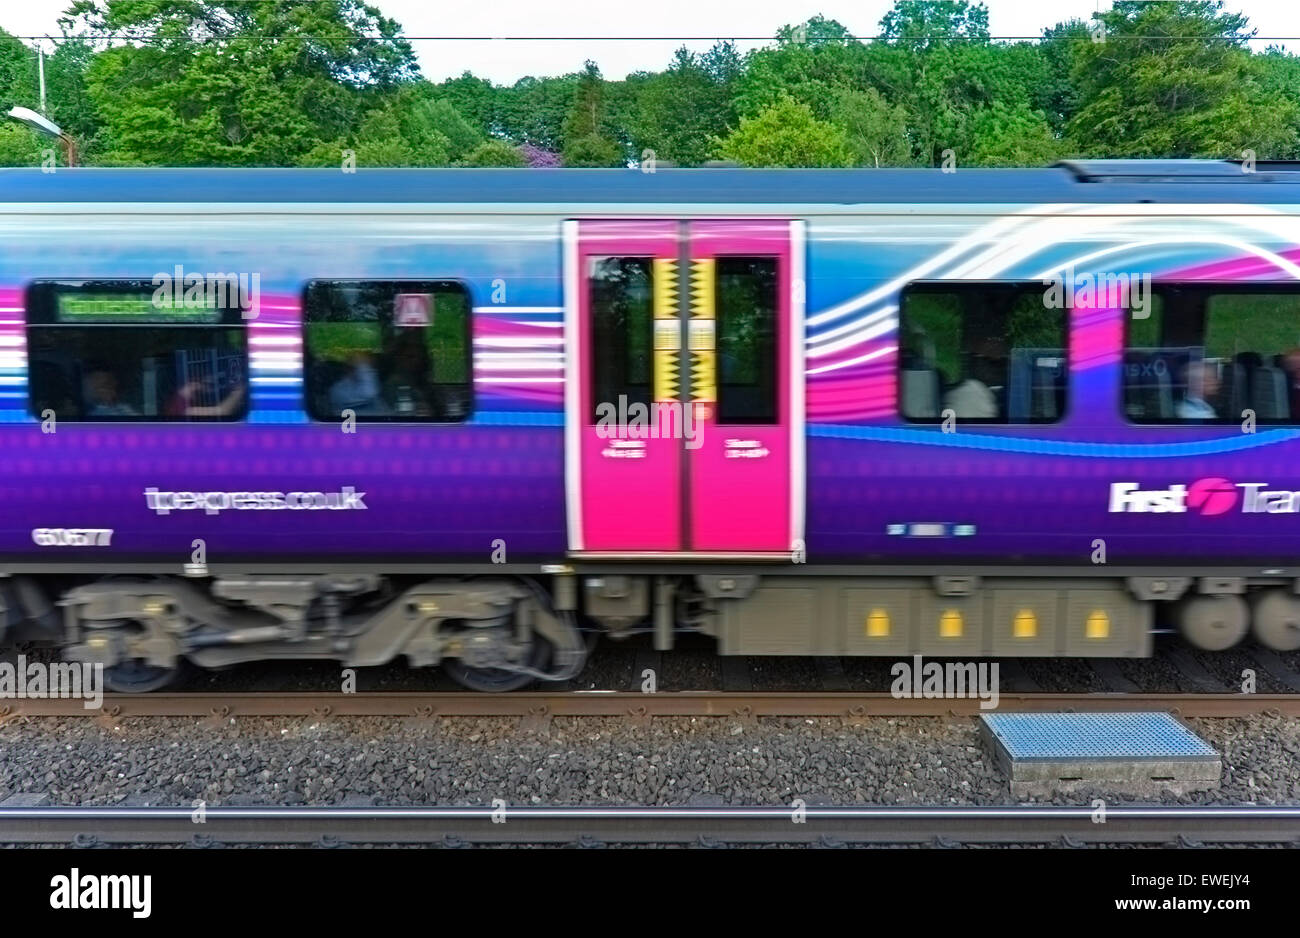 First Transpennine Express train at speed. Oxenholme Rail Station, Cumbria, England, United Kingdom, Europe. - Stock Image